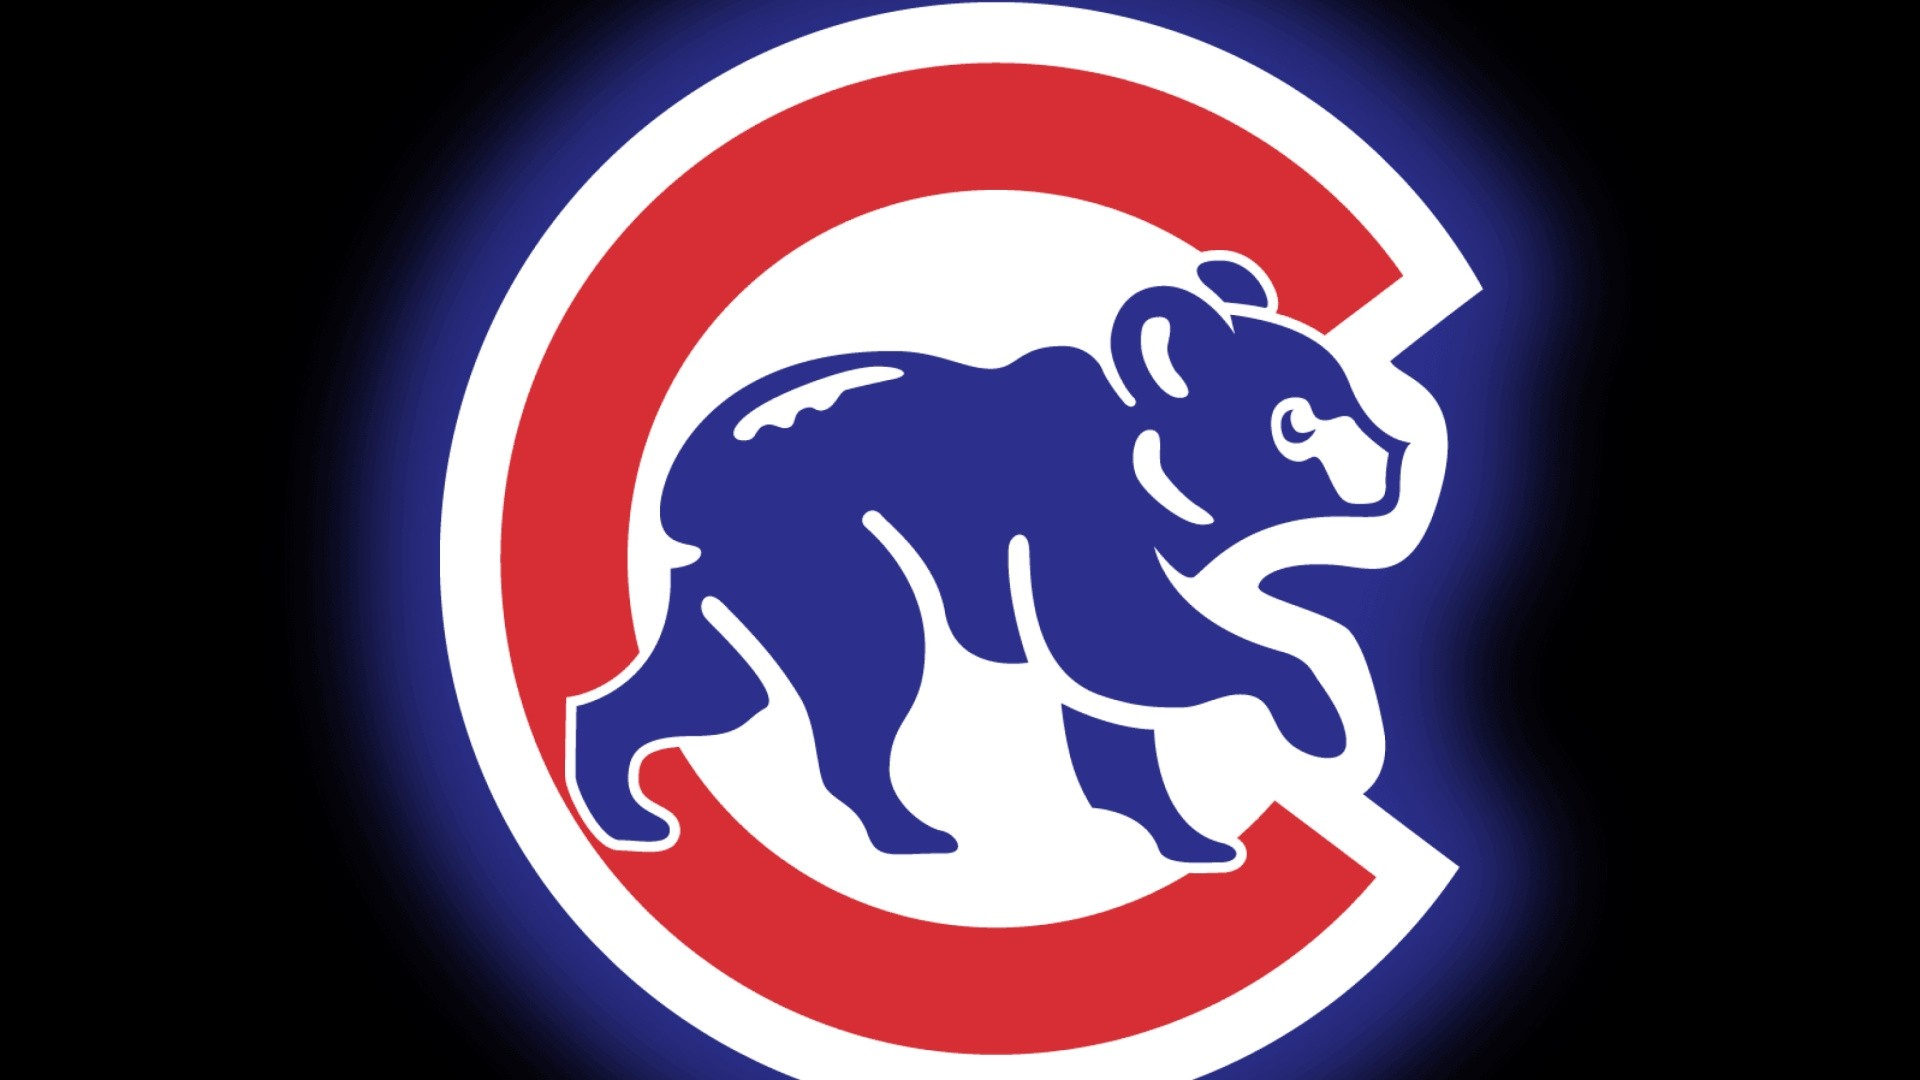 Cubs Wallpaper for pc